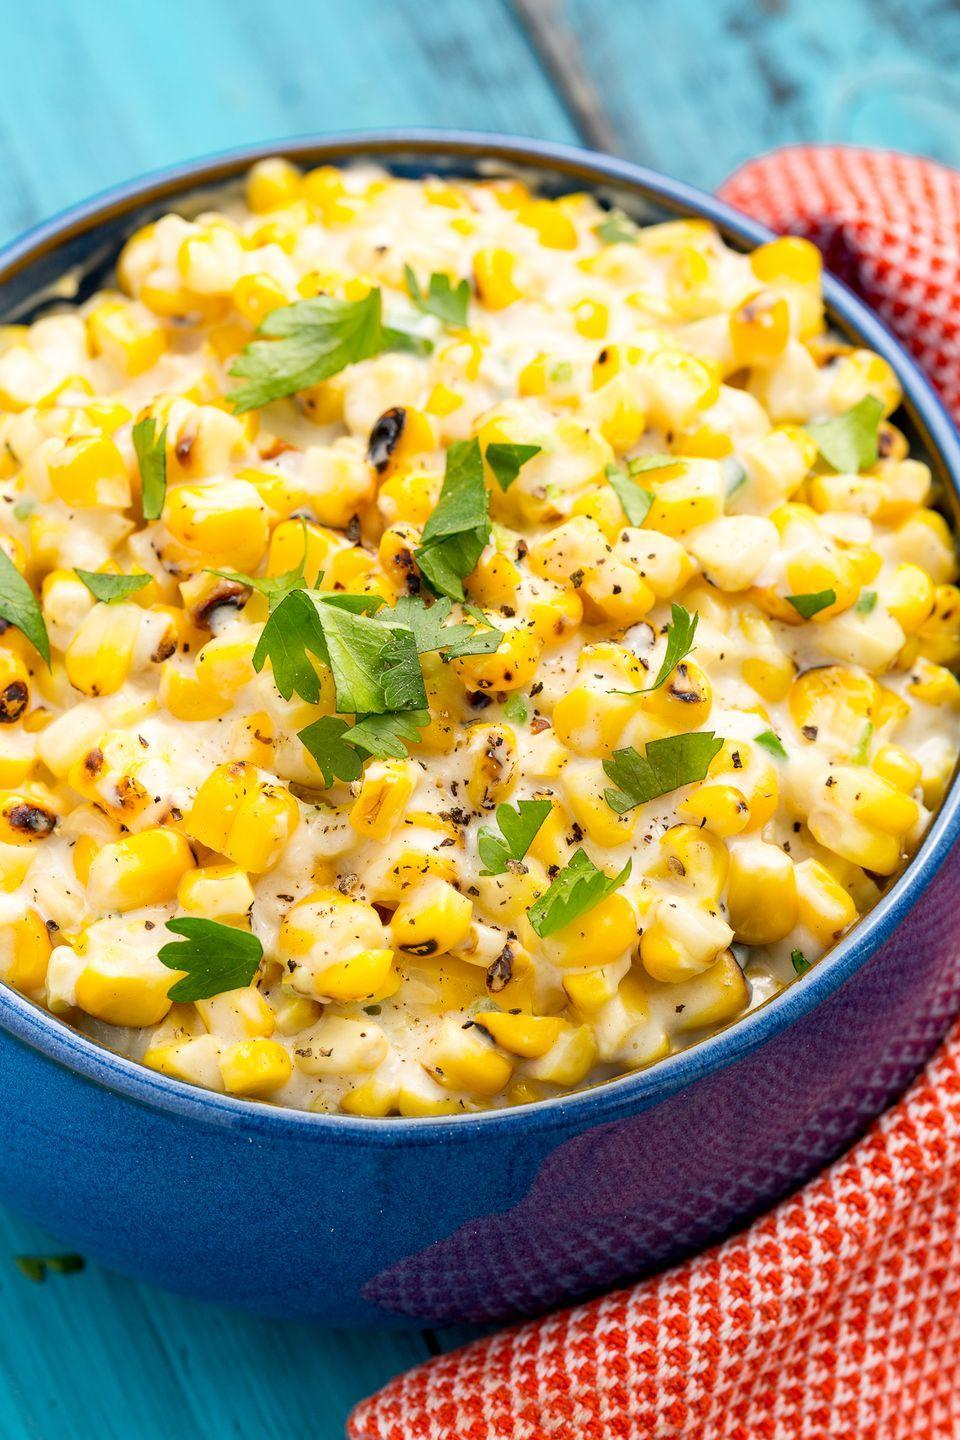 """<p>Our take on this classic side packs a punch with charred, fresh corn and jalapeño.</p><p>Get the recipe from <a href=""""https://www.delish.com/cooking/recipe-ideas/recipes/a47386/grilled-creamed-corn-recipe/"""" rel=""""nofollow noopener"""" target=""""_blank"""" data-ylk=""""slk:Delish"""" class=""""link rapid-noclick-resp"""">Delish</a>.</p>"""